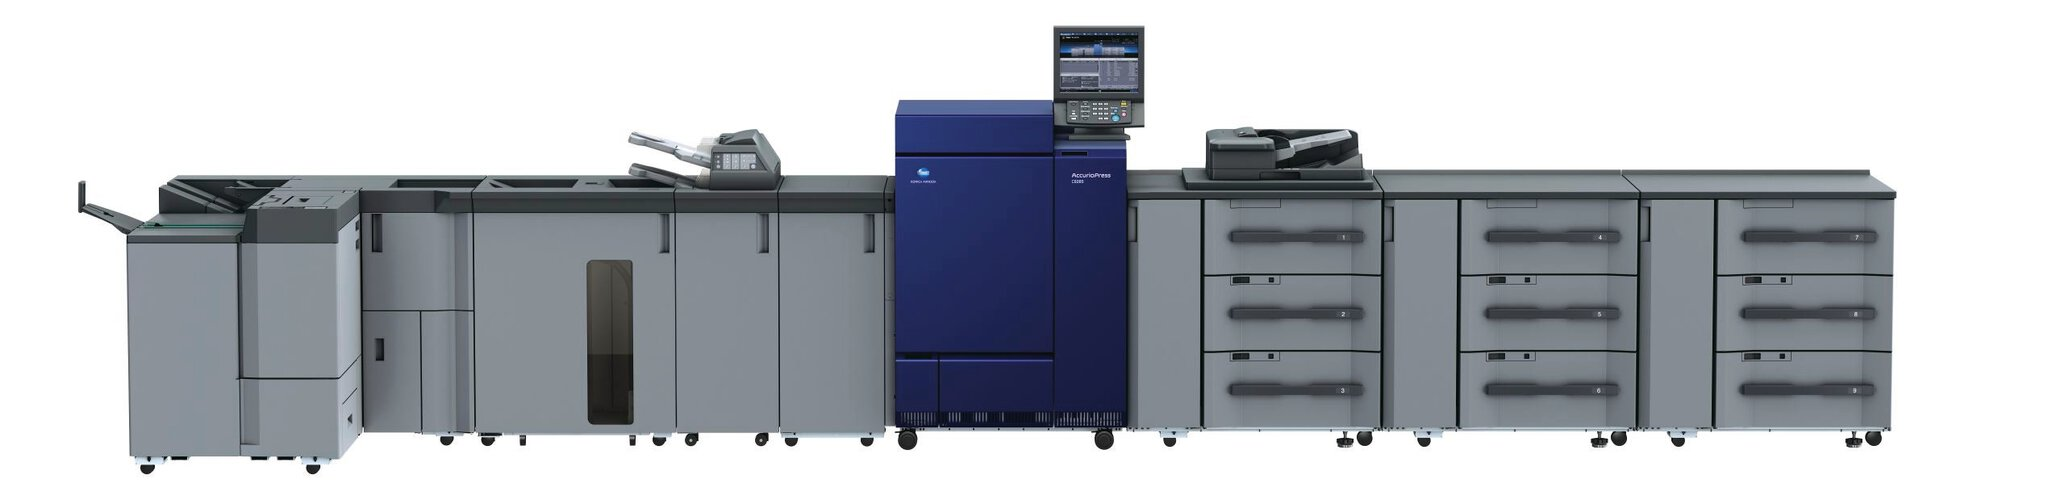 Konica Minolta accurio press c6085 produksjonsprinter